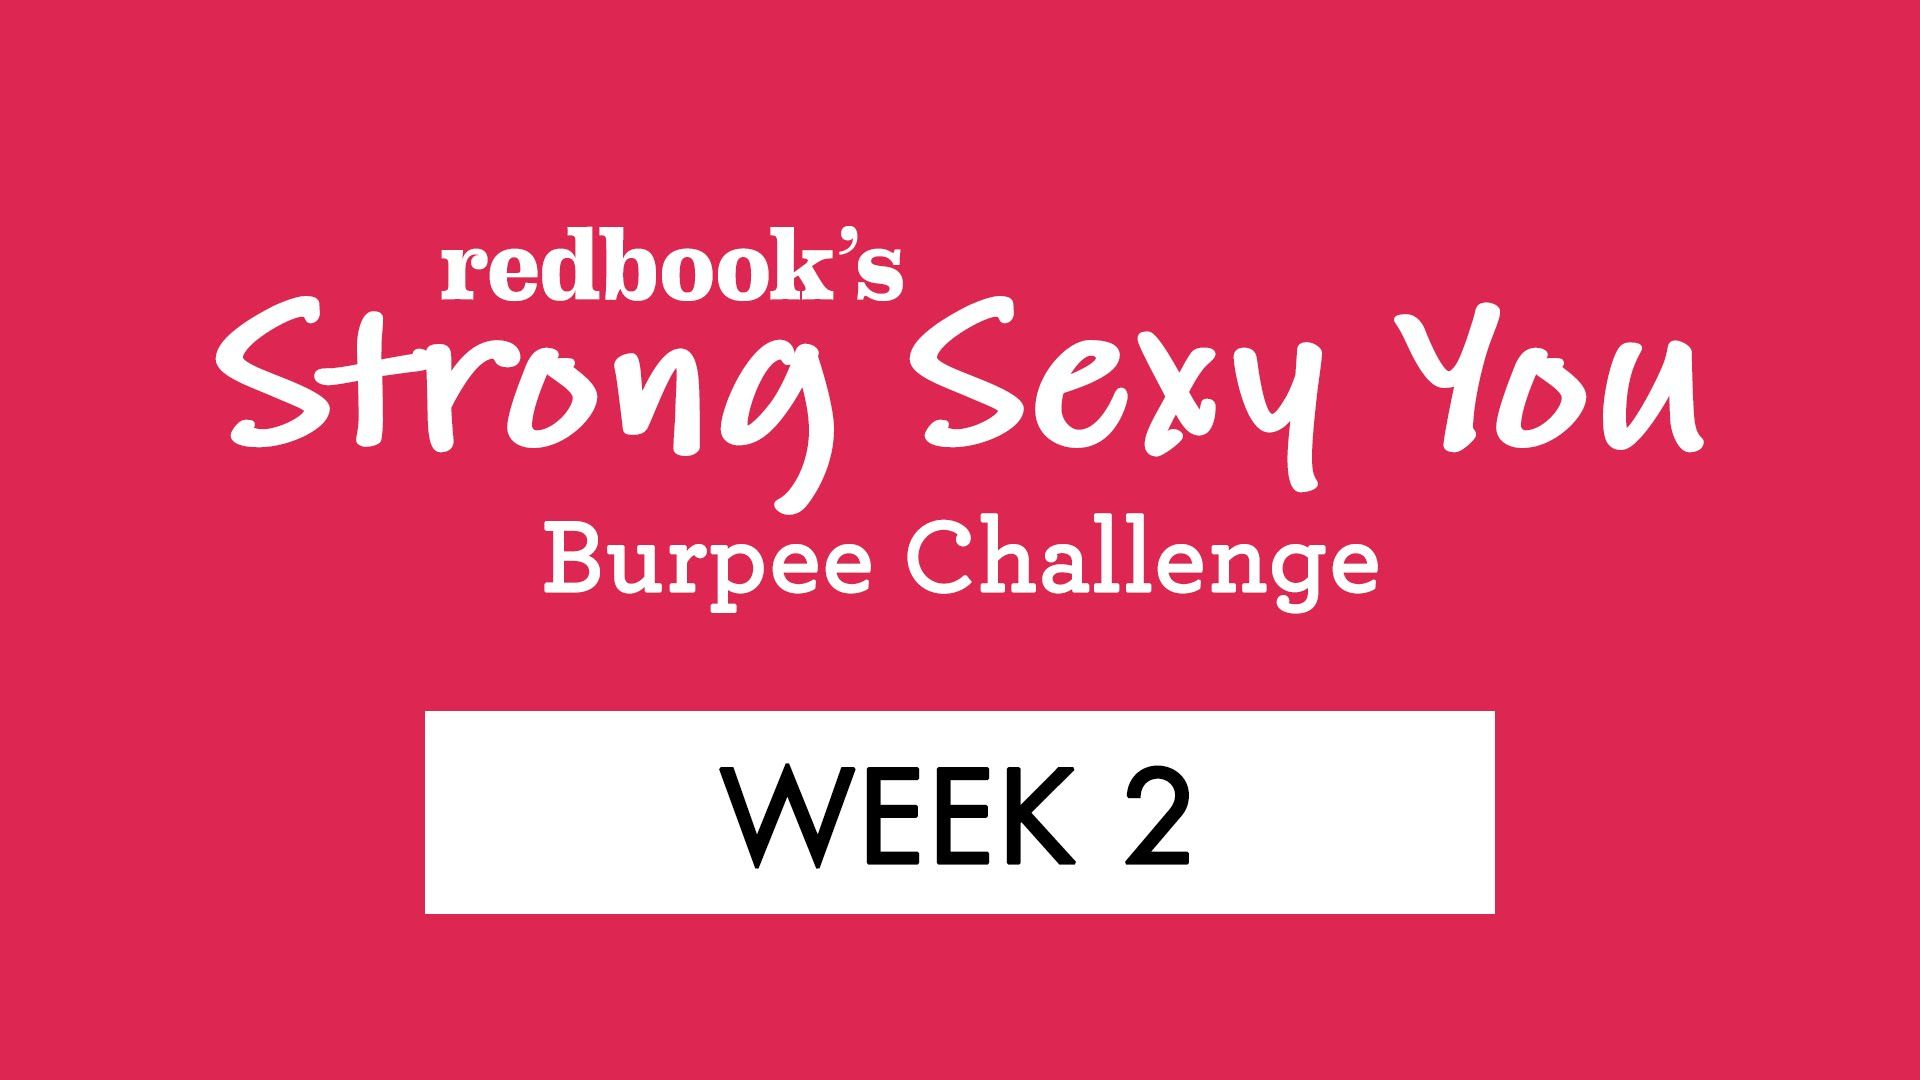 Communication on this topic: REDBOOKs Strong Sexy You Burpee Challenge is , redbooks-strong-sexy-you-burpee-challenge-is/